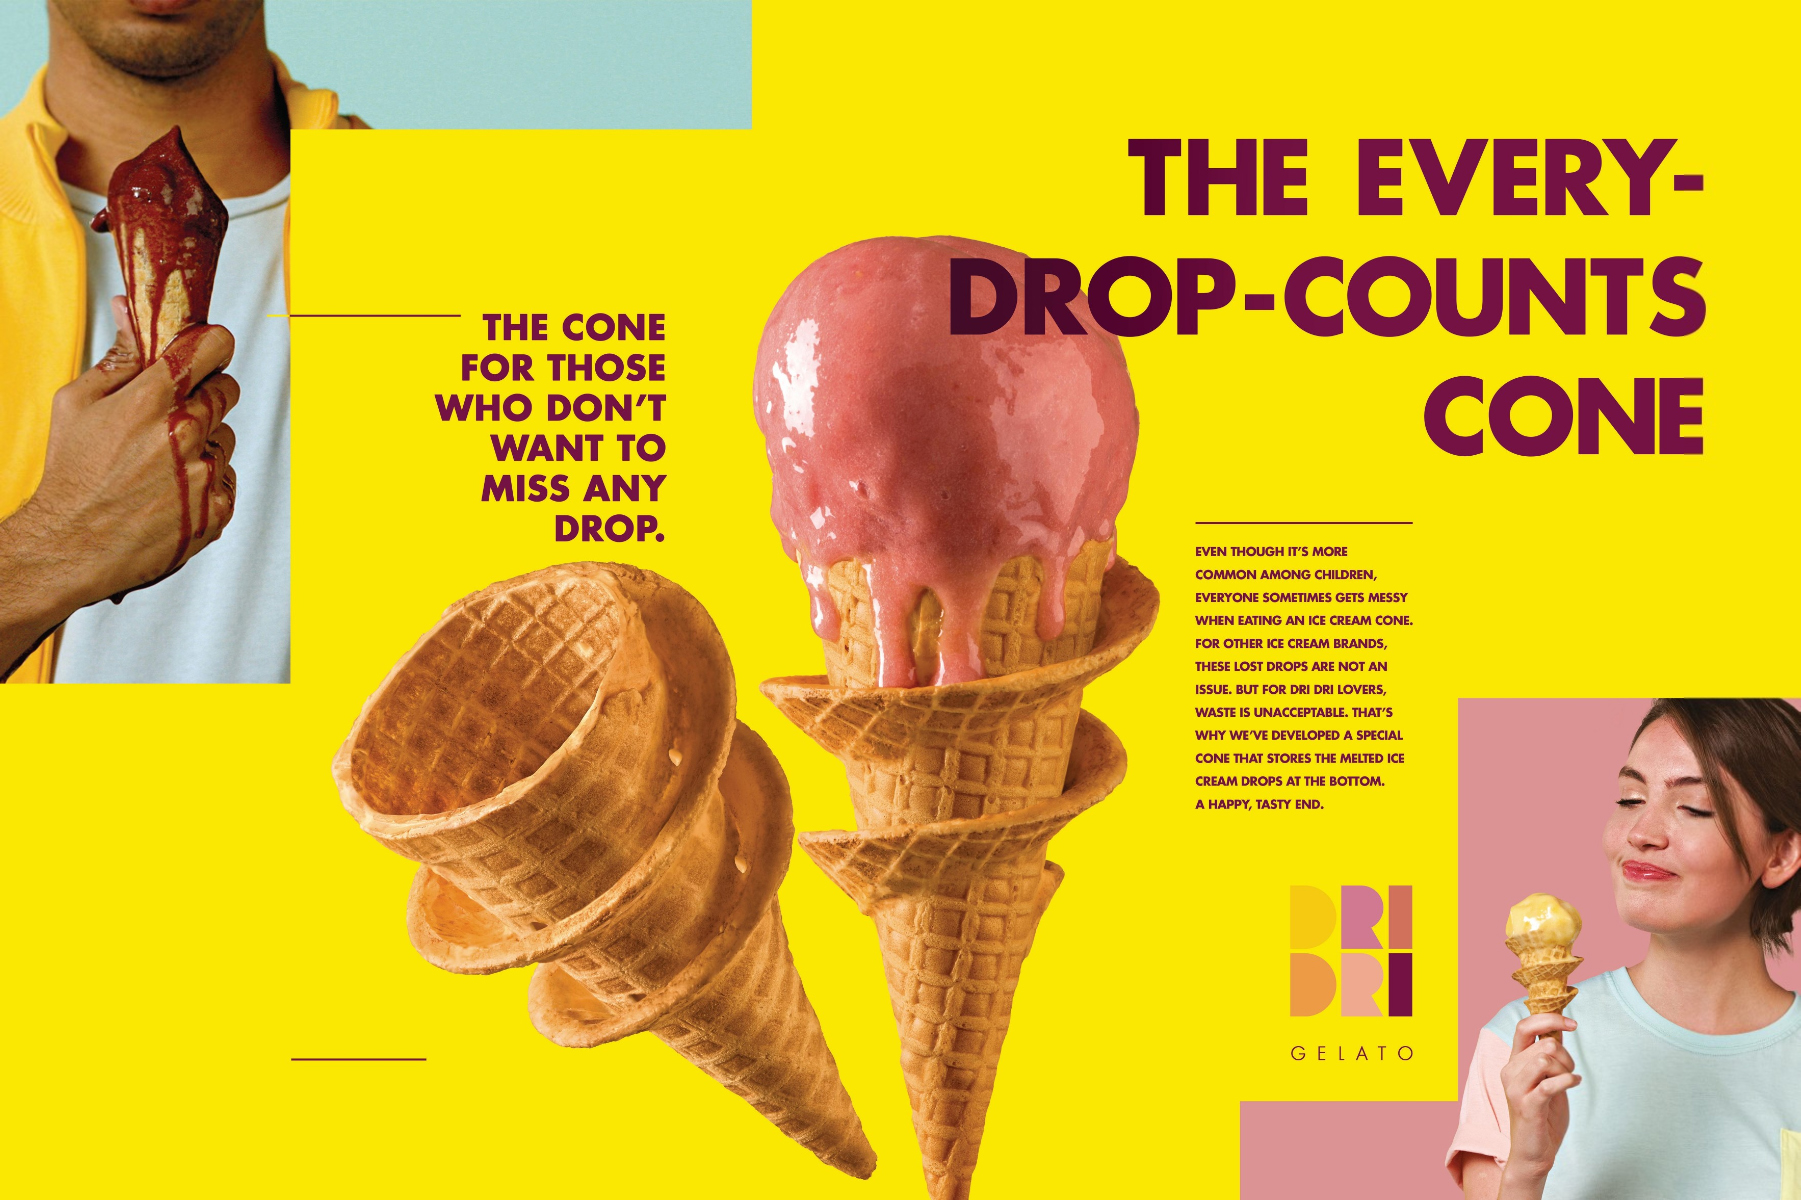 dri-dri-the-every-drop-counts-cone.jpg